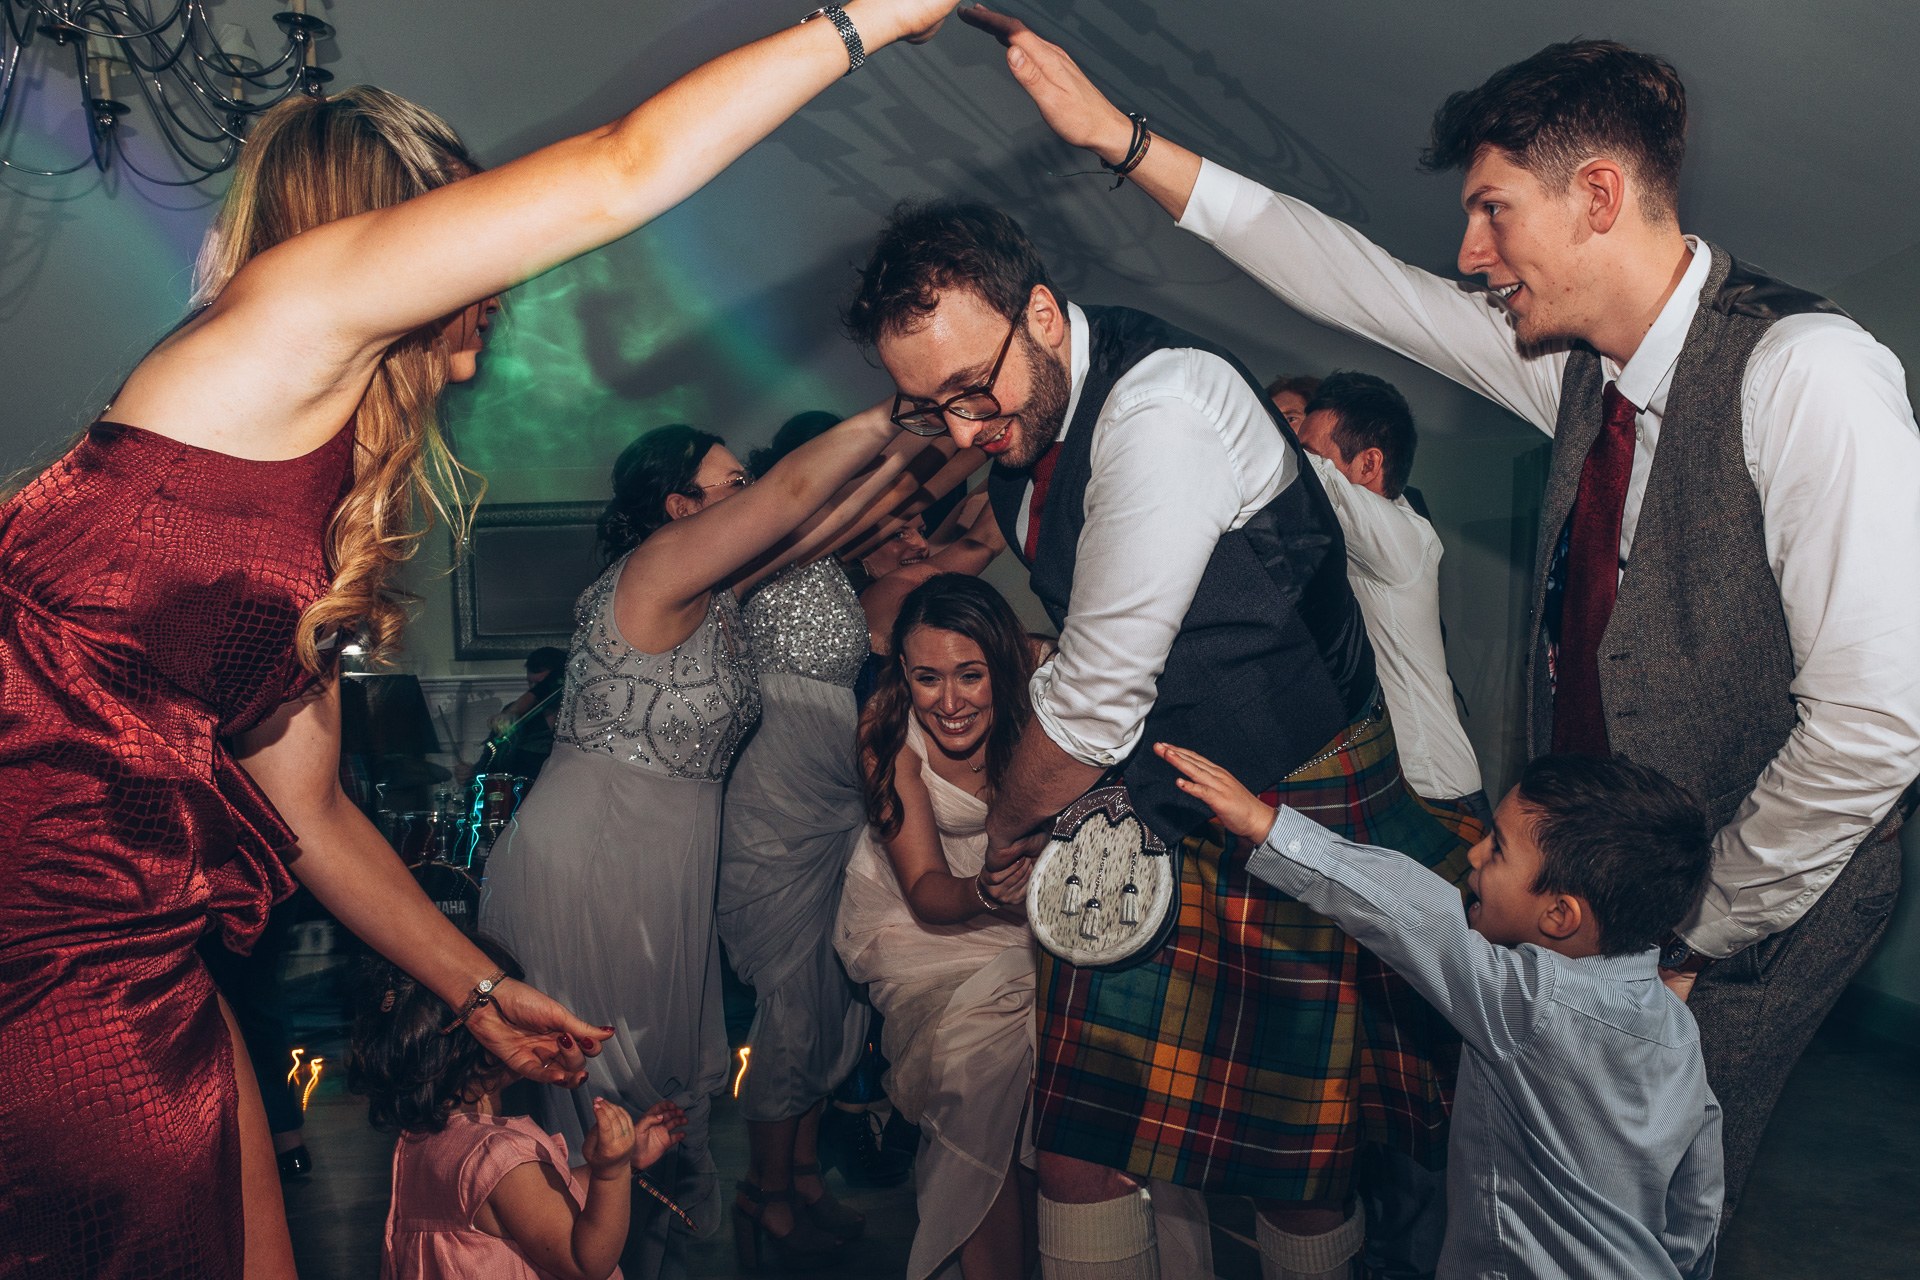 ceilidh dancing at a wedding